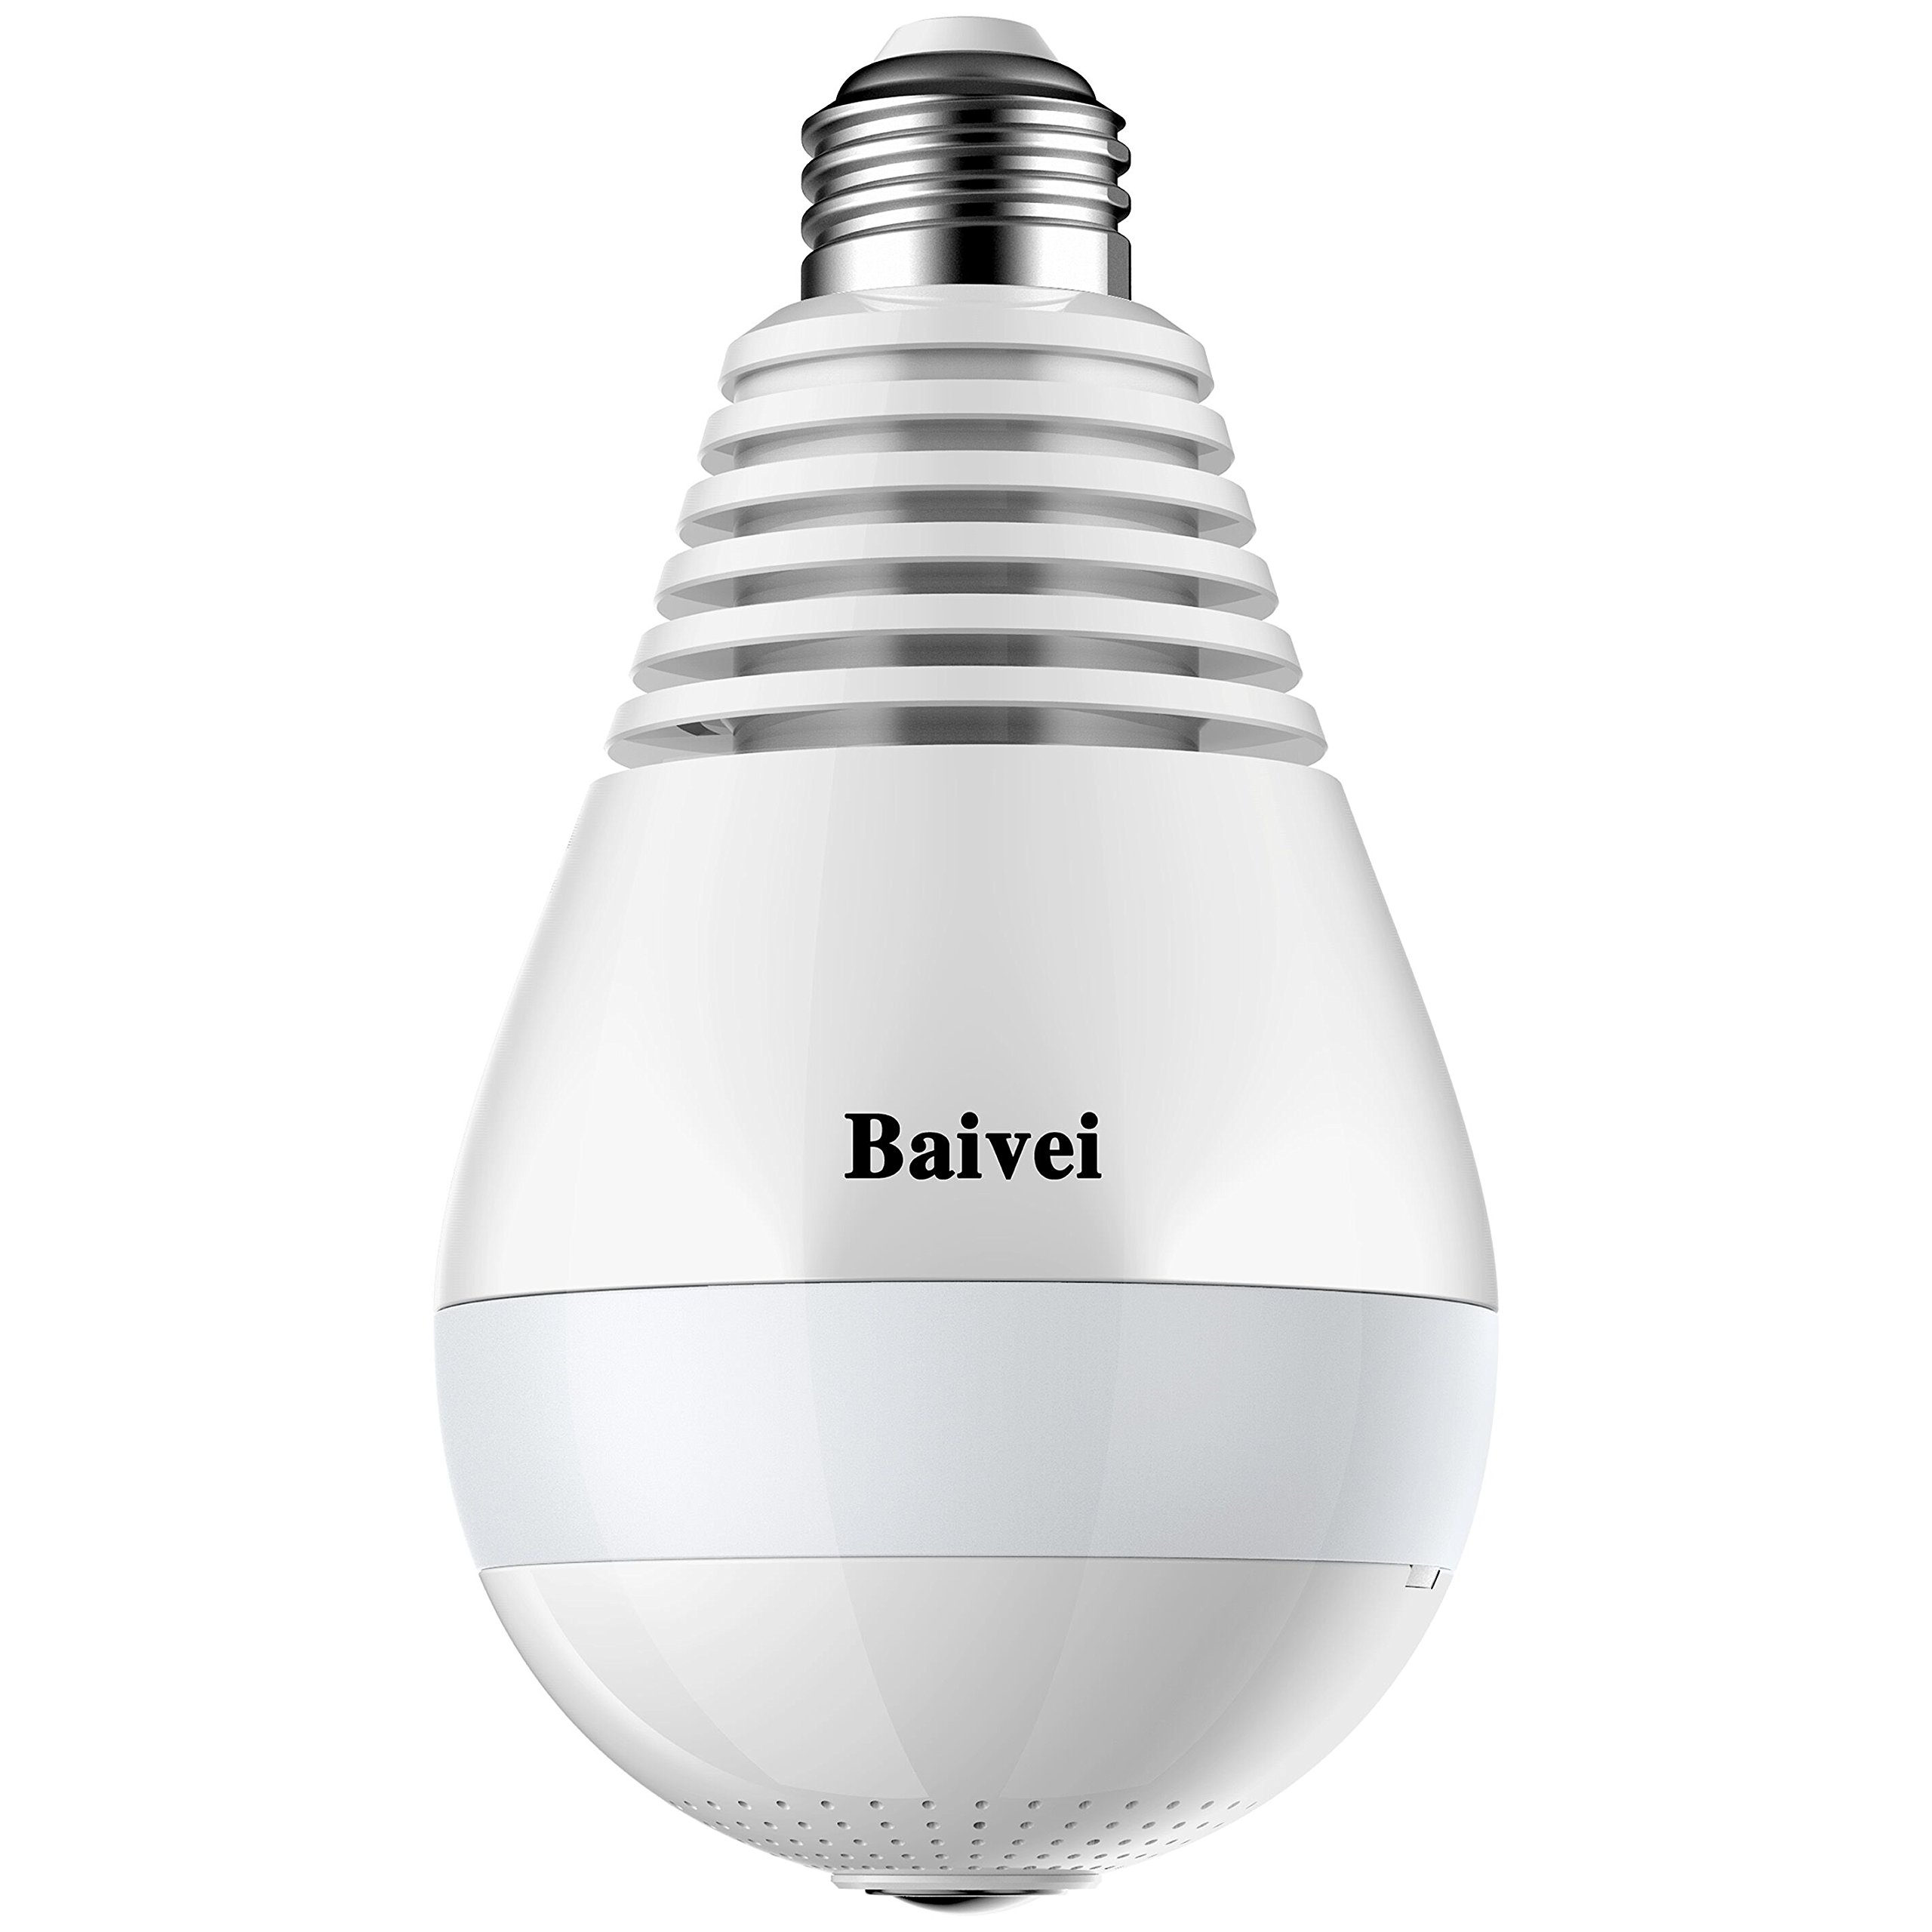 Baivei 960P Wireless WiFi IP Panoramic Bulb Camera 360 Degrees Fisheye Lens For Home Security System Pet Monitor&Baby Camera,Two Way Talking,Motion Detection(White)